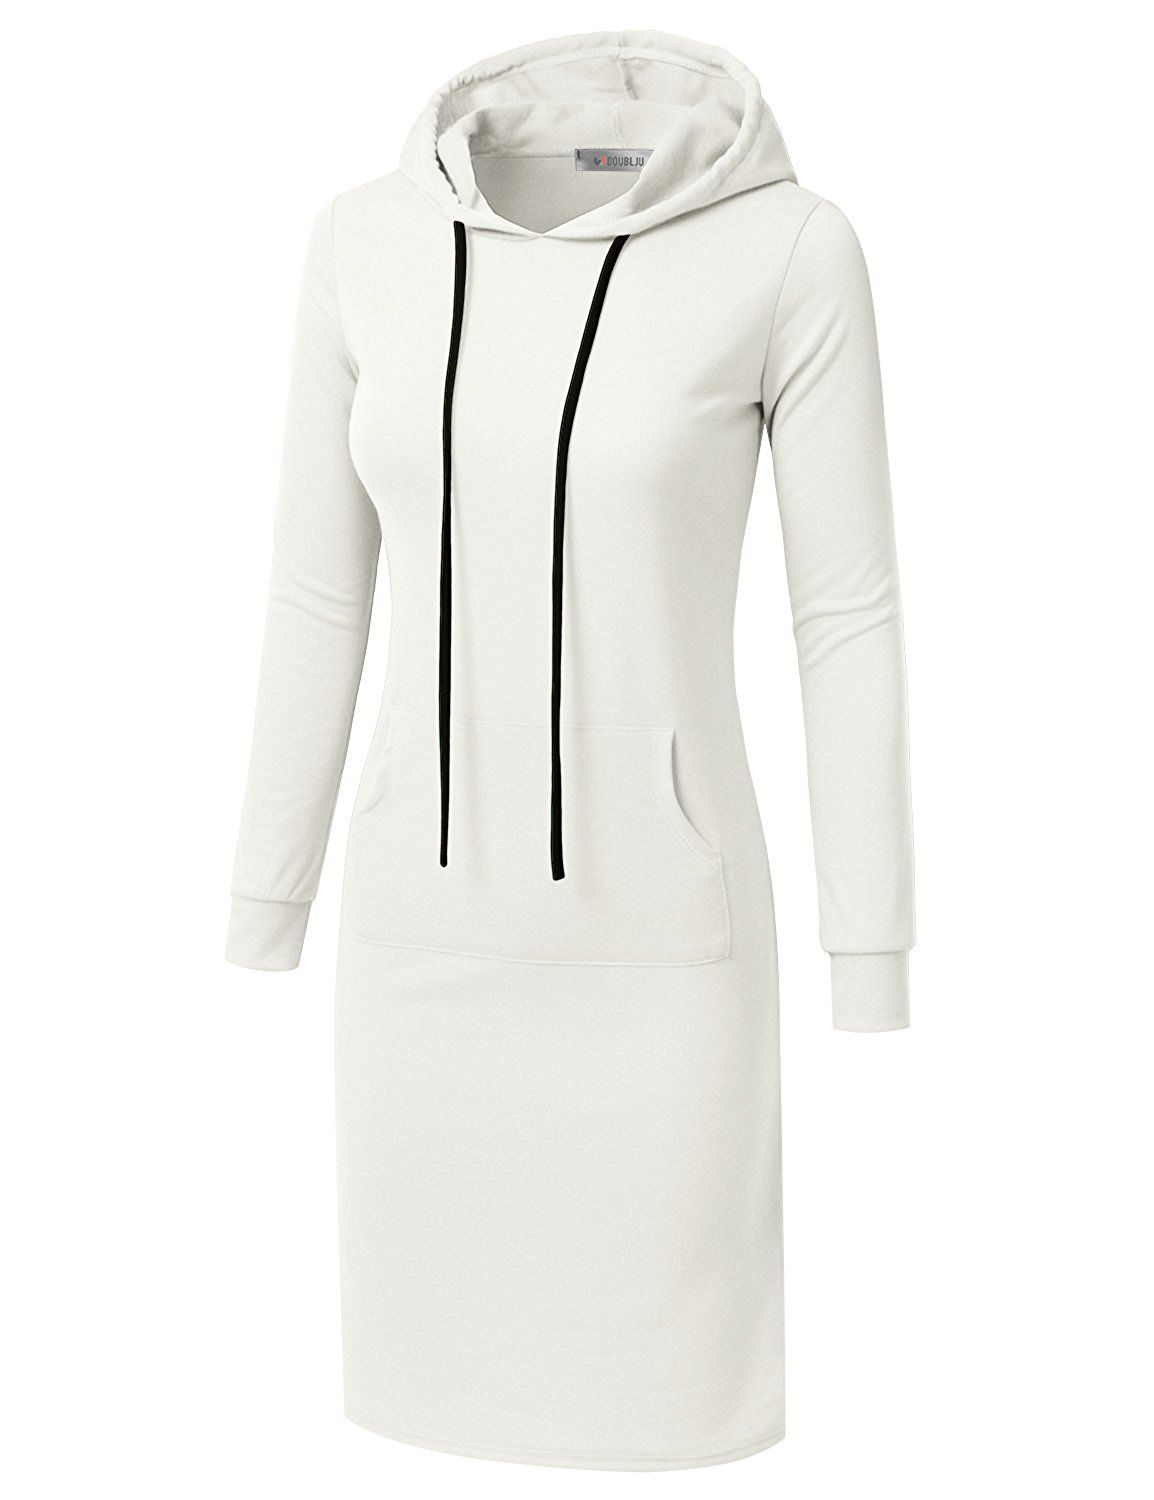 Doublju Womens Long Sleeve Hoodie Midi Dress Made In Usa At Amazon Women S Clothing Store Plus Clothing Clothes Womens Dresses [ 1500 x 1154 Pixel ]